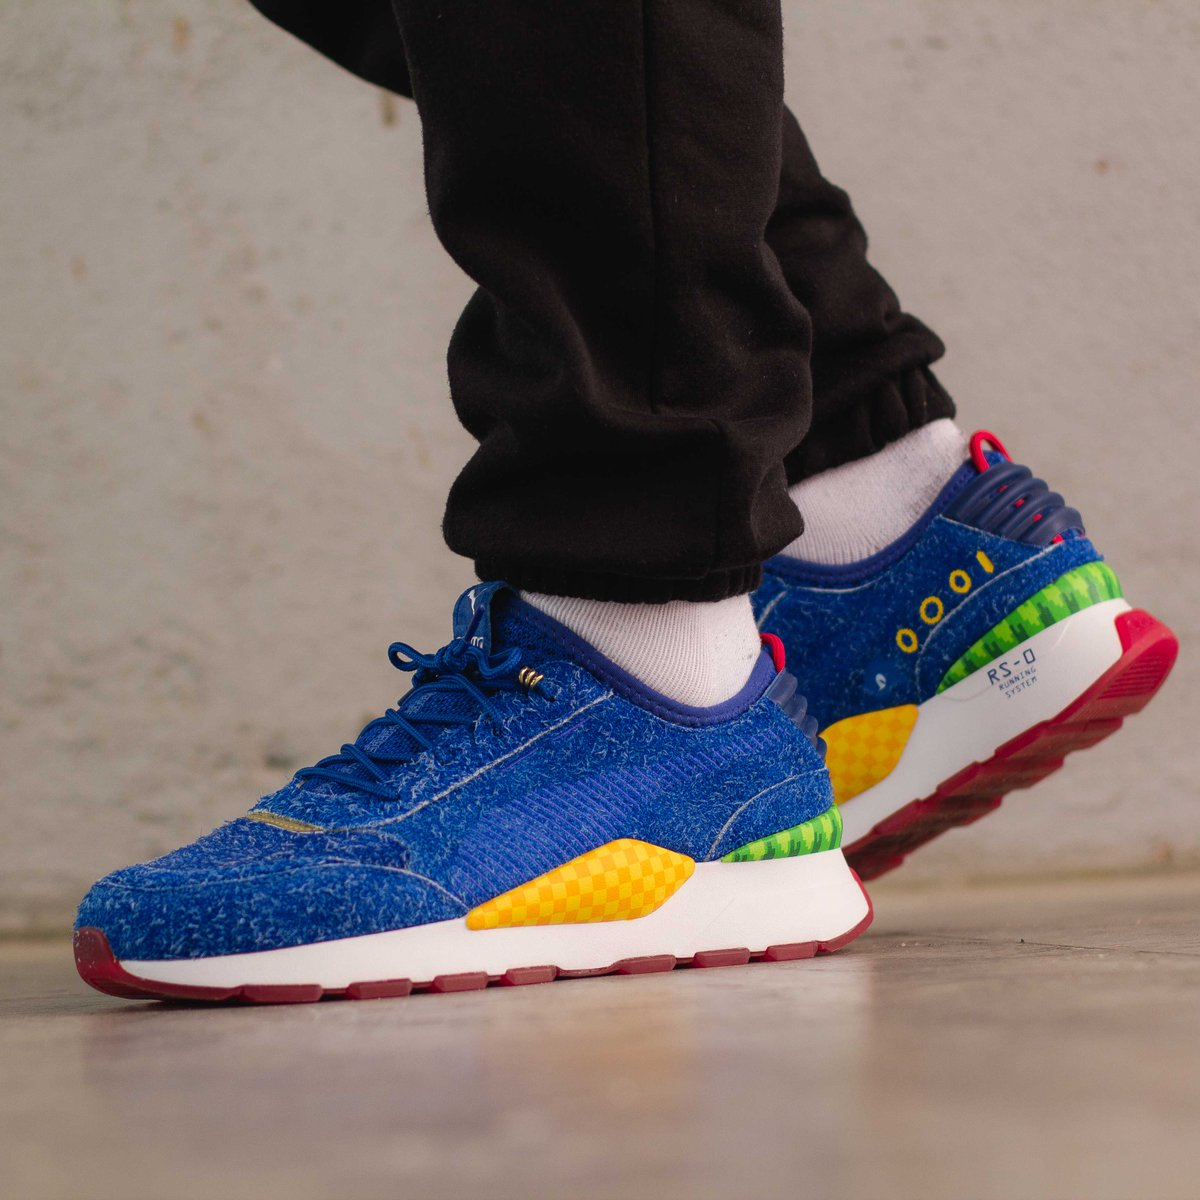 Footdistrict On Twitter Run Jump Collect Magic Power And Dodge Hazardous Objects Enemies Just Like Sonic The Hedgehog Sega X Puma Rs 0 Sonic In Store Online Now Https T Co Pclcdfgrek